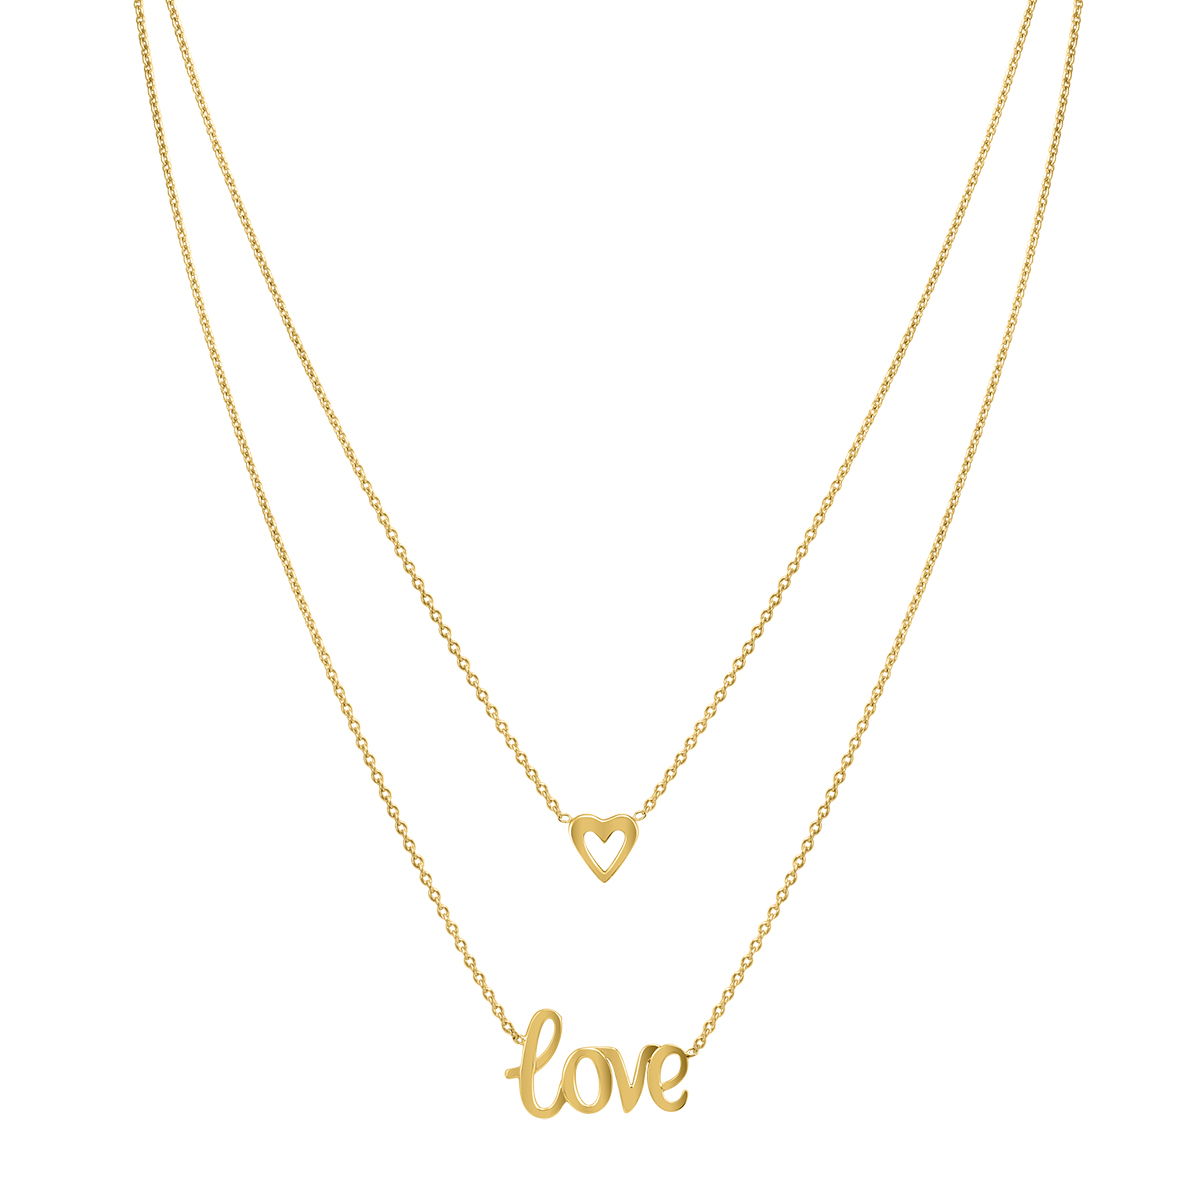 10K Yellow Gold Heart & Love Double Strand Necklace